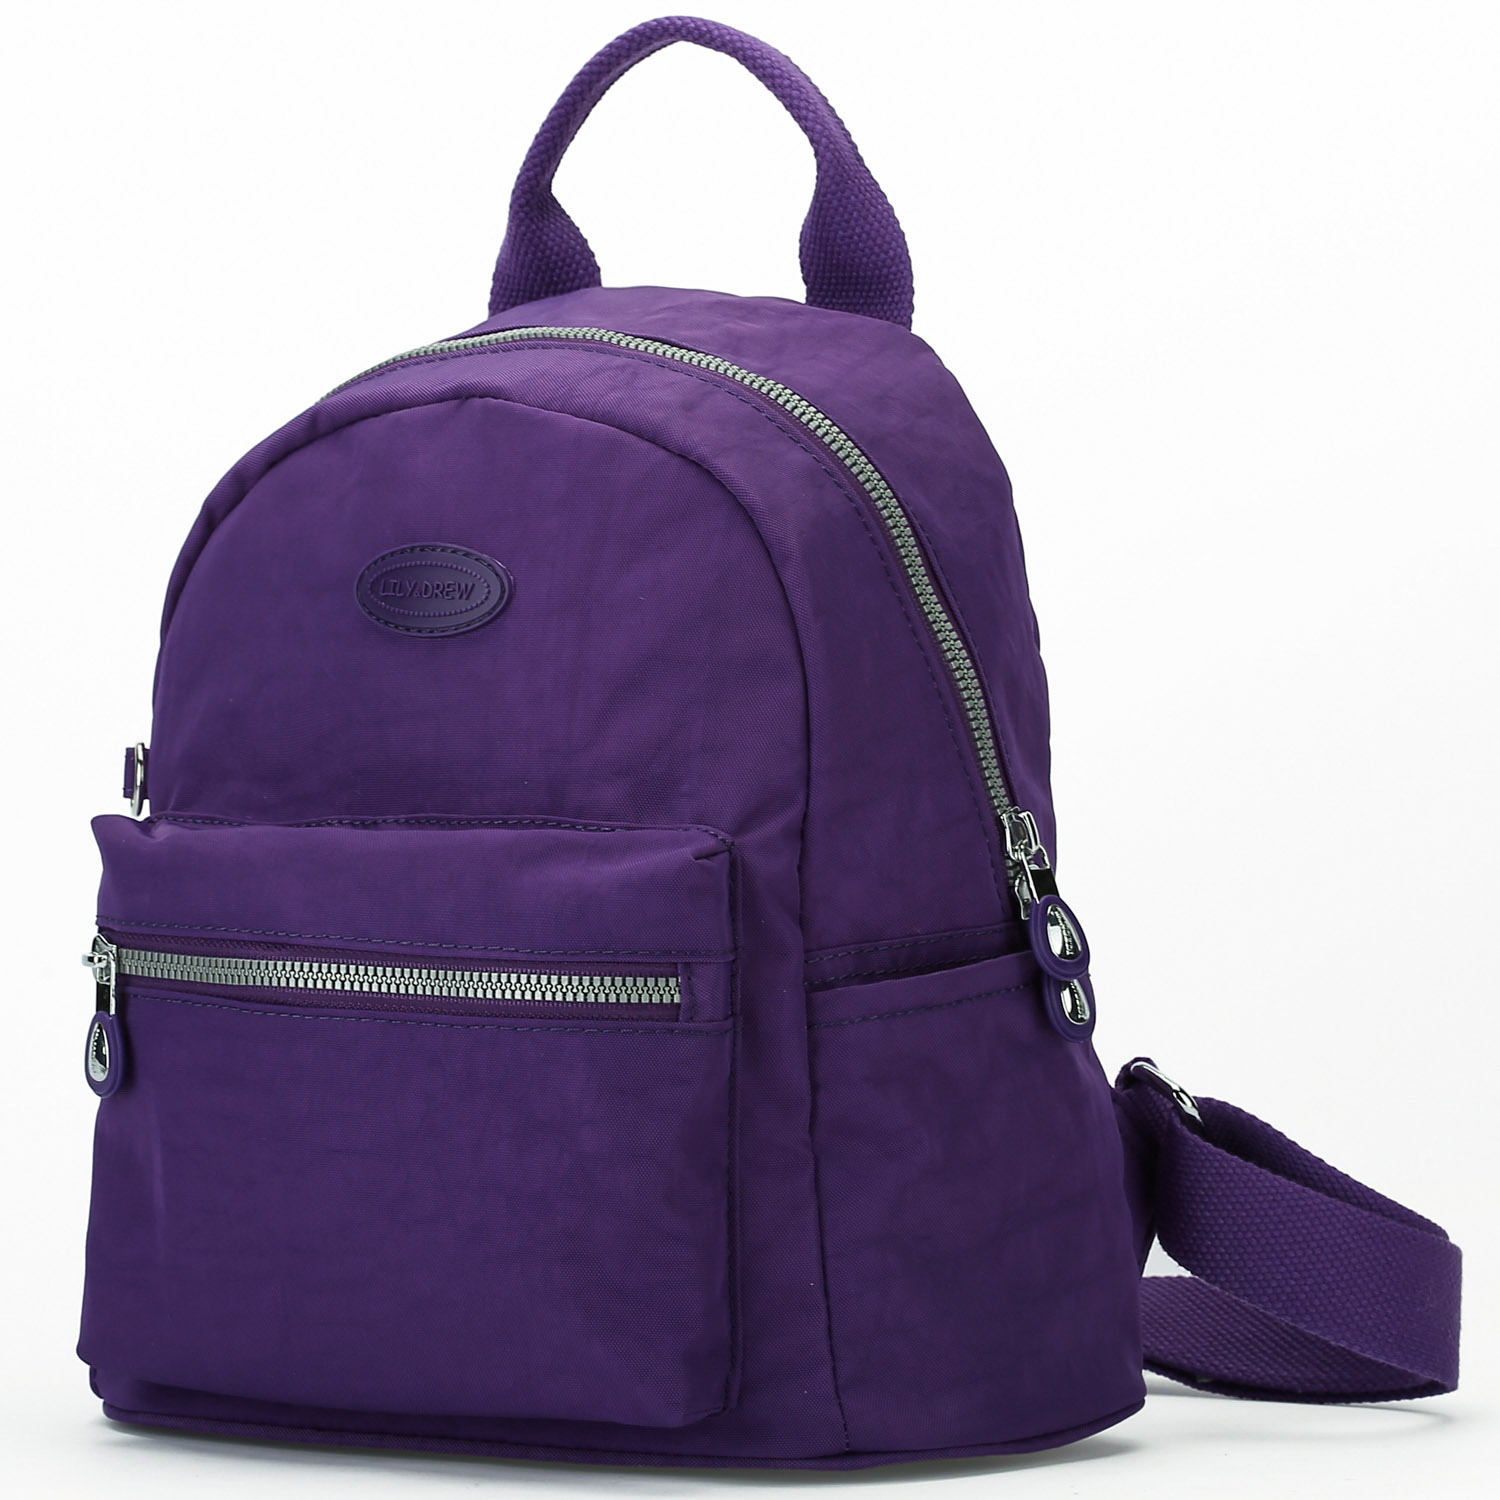 Lily Drew Nylon Mini Casual Travel Daypack Backpack Purse Purple And